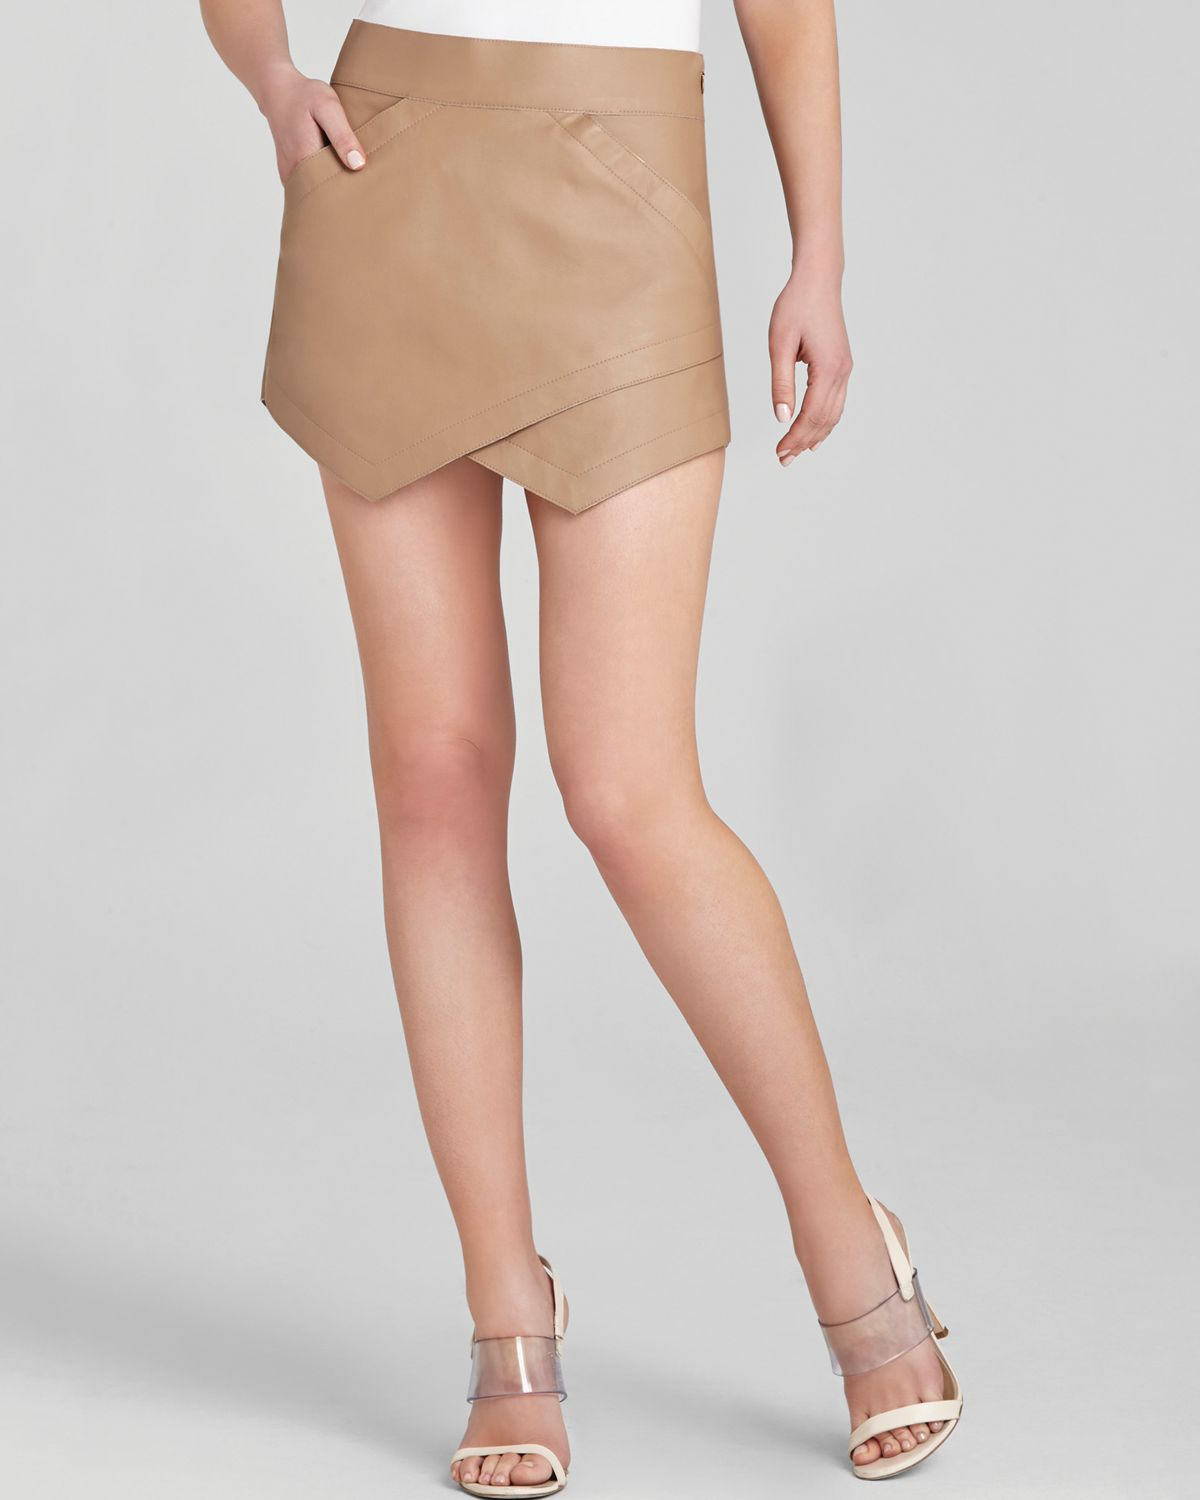 Bcbgmaxazria Skirt - Owen Faux Leather Asymmetric in Natural | Lyst